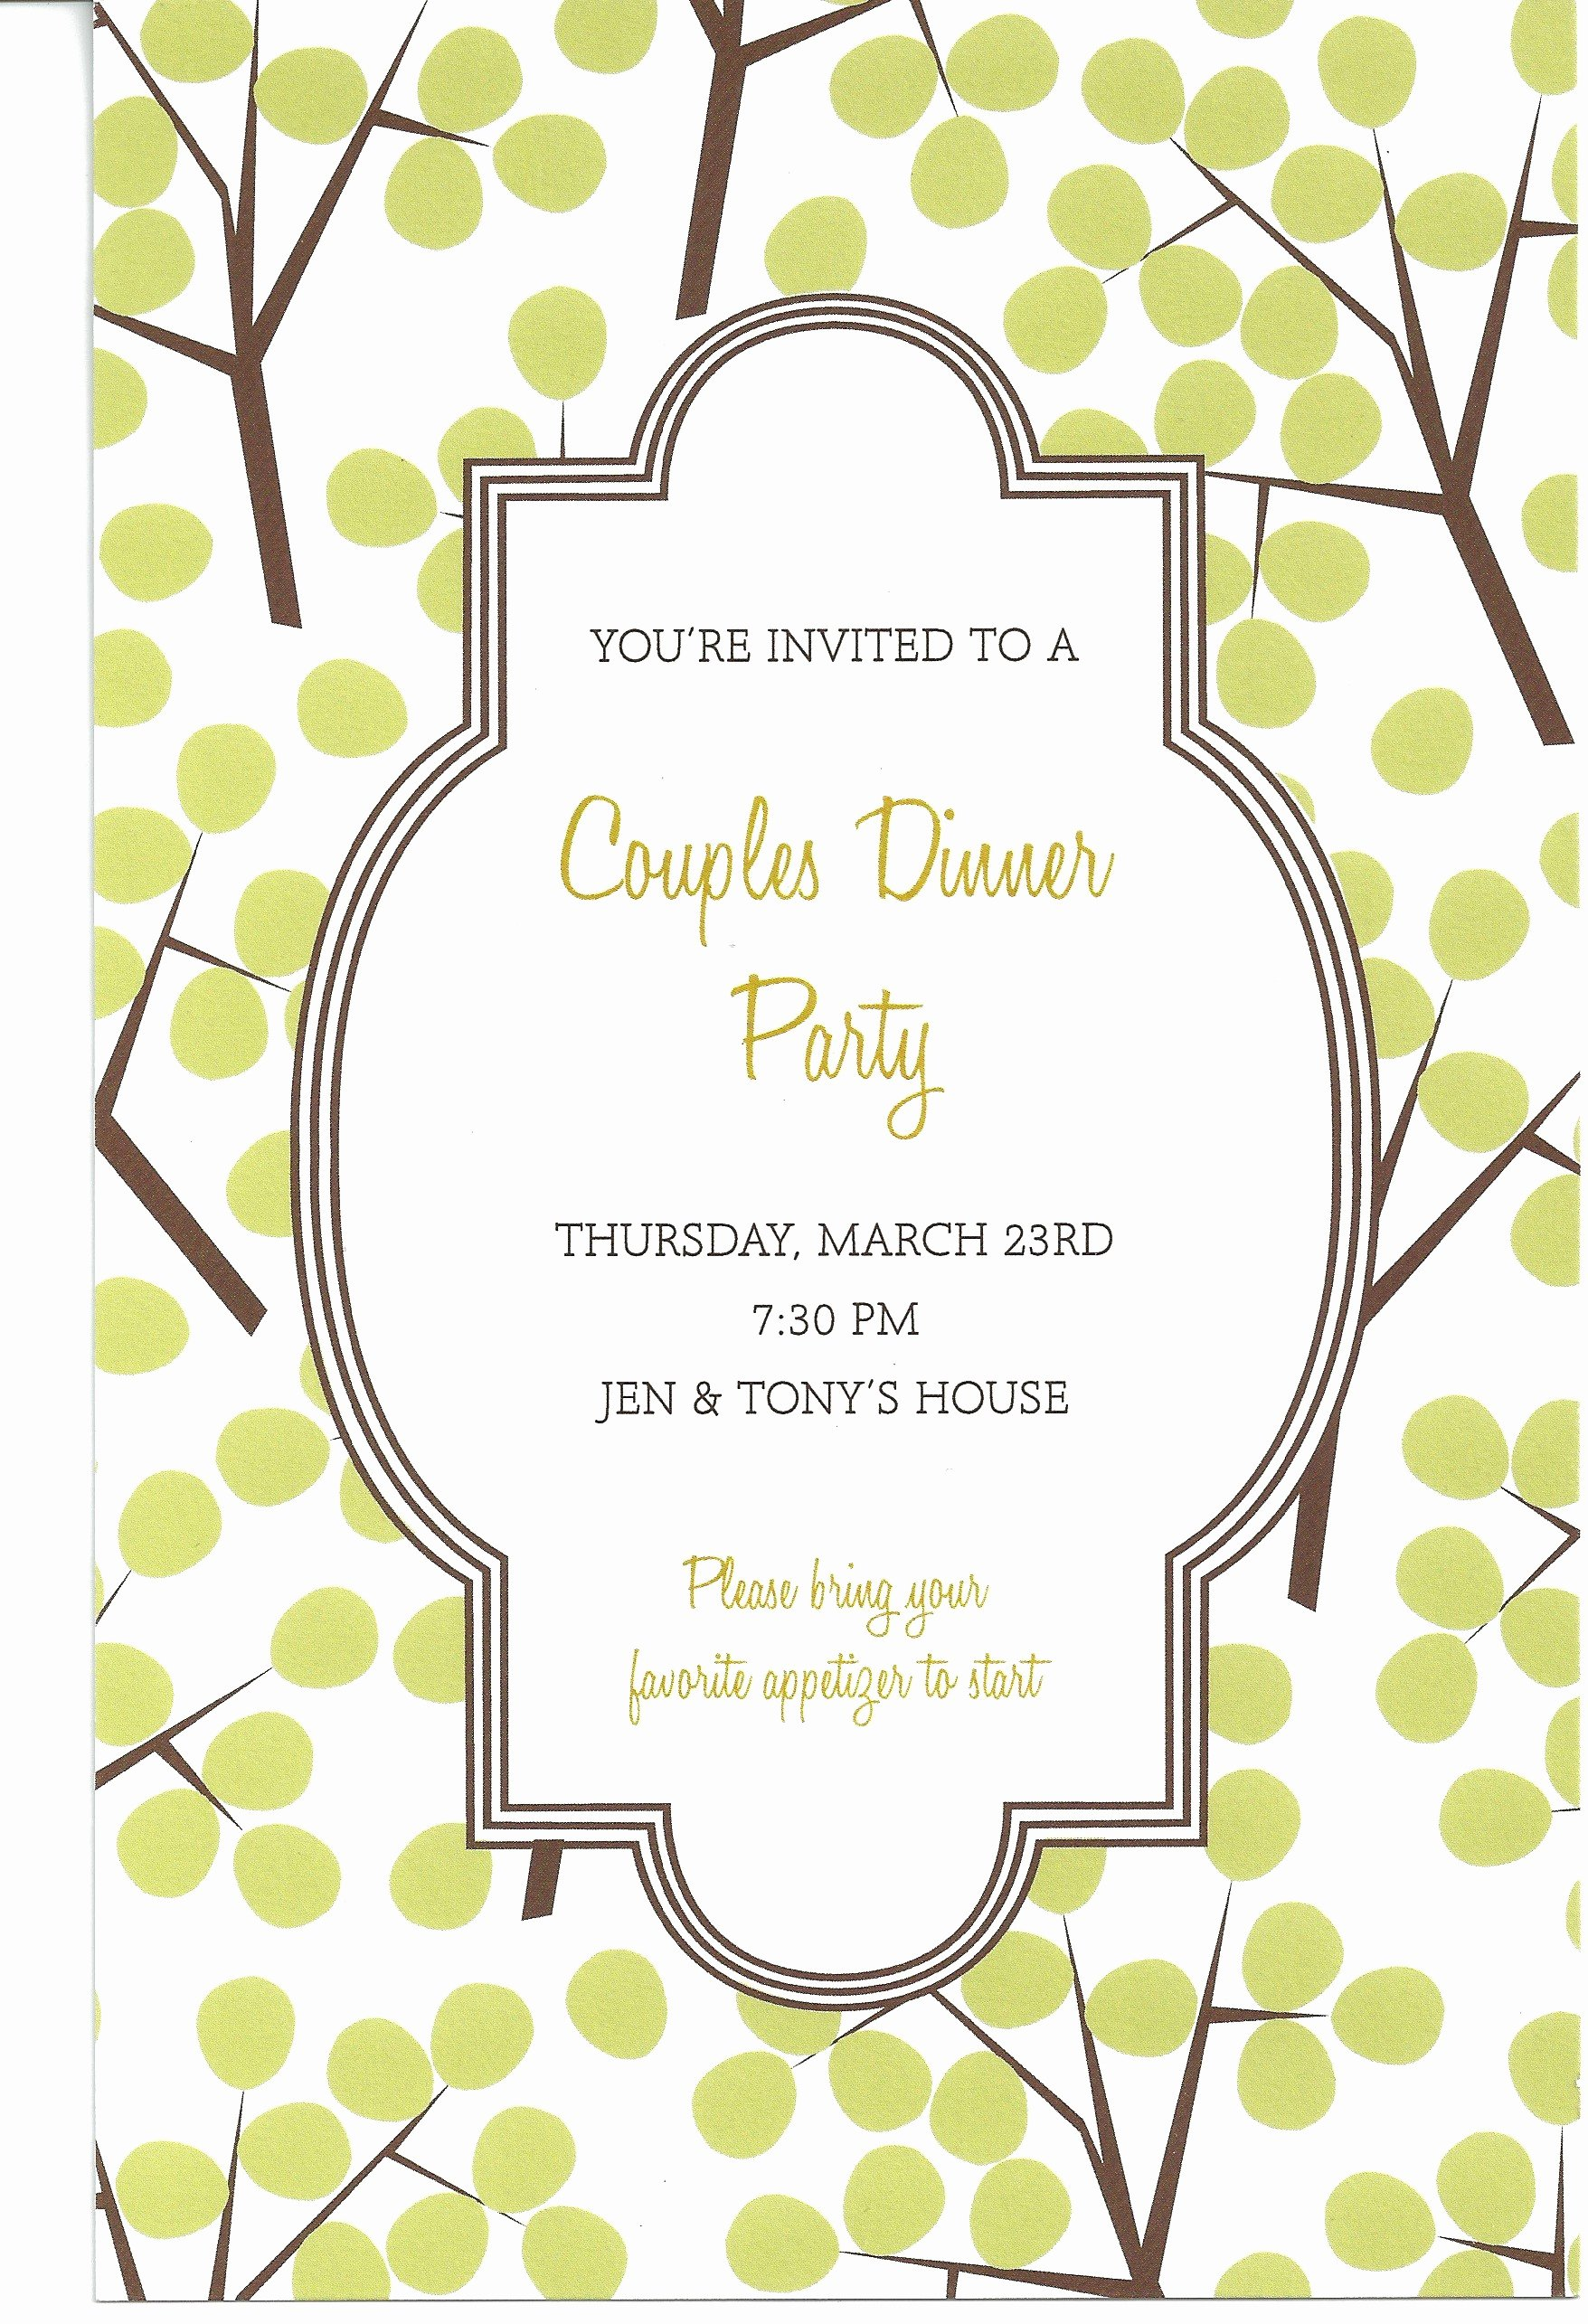 Rehearsal Dinner Invitations Templates Free